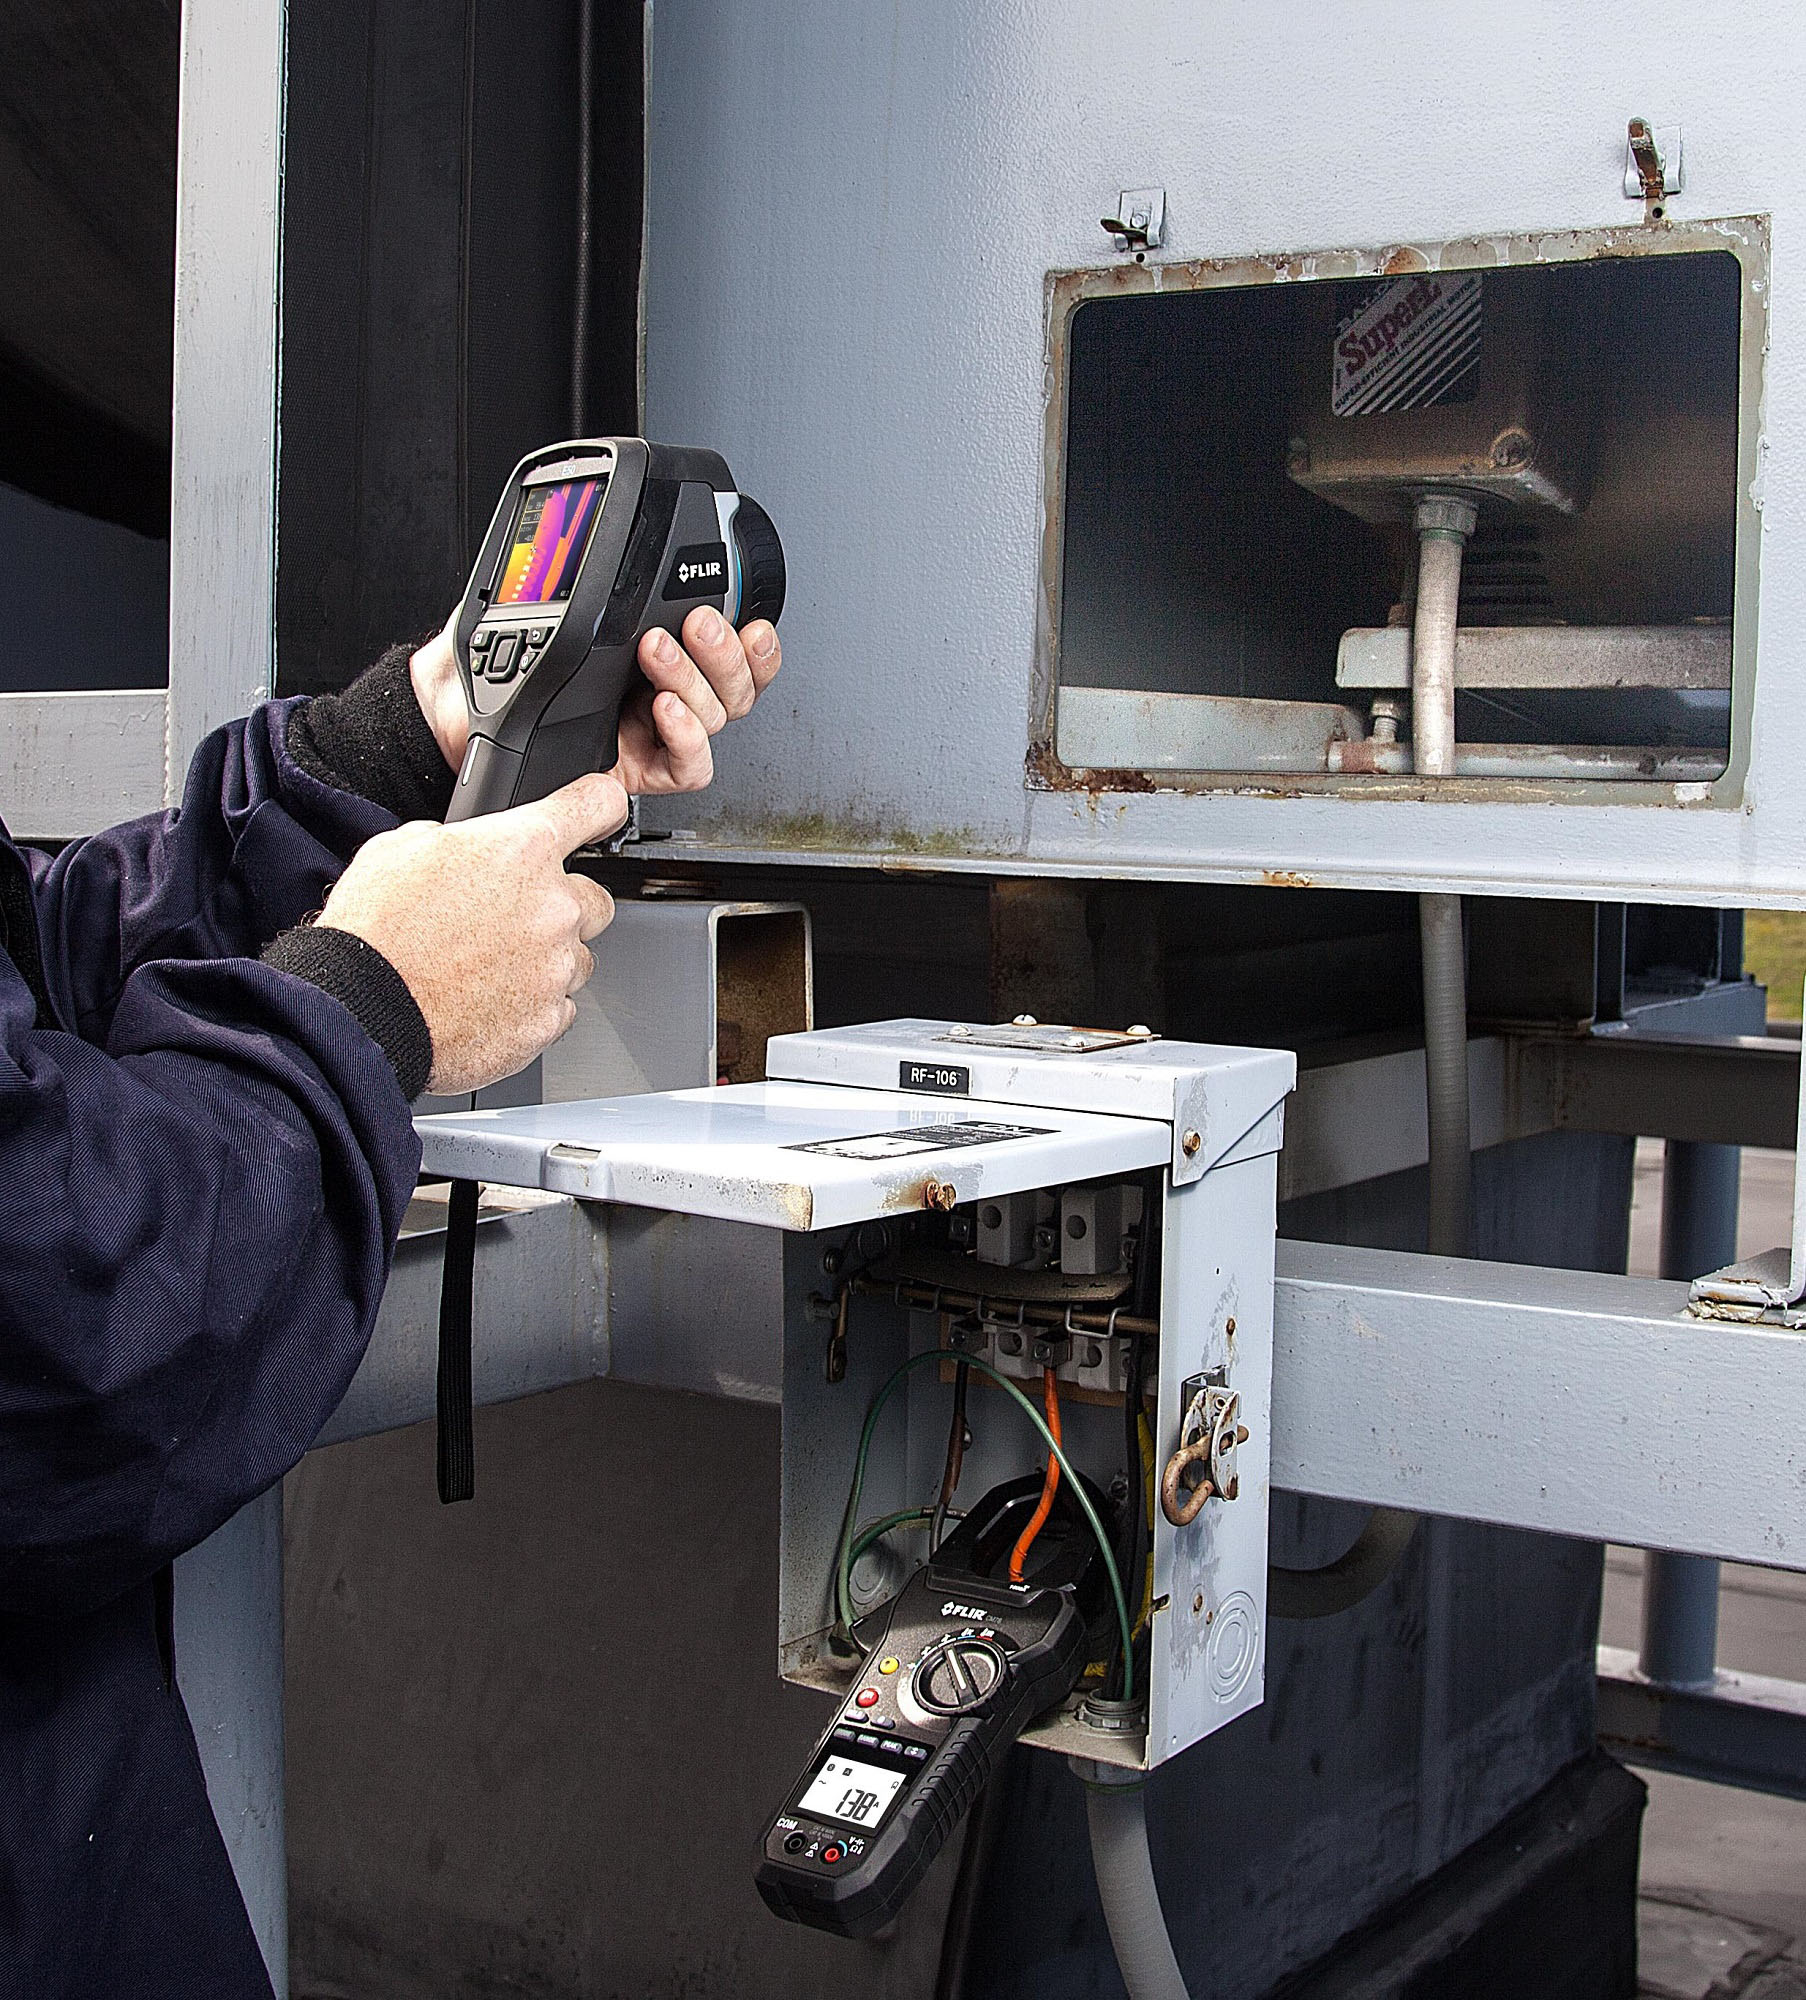 Free clamp meter with infrared cameras